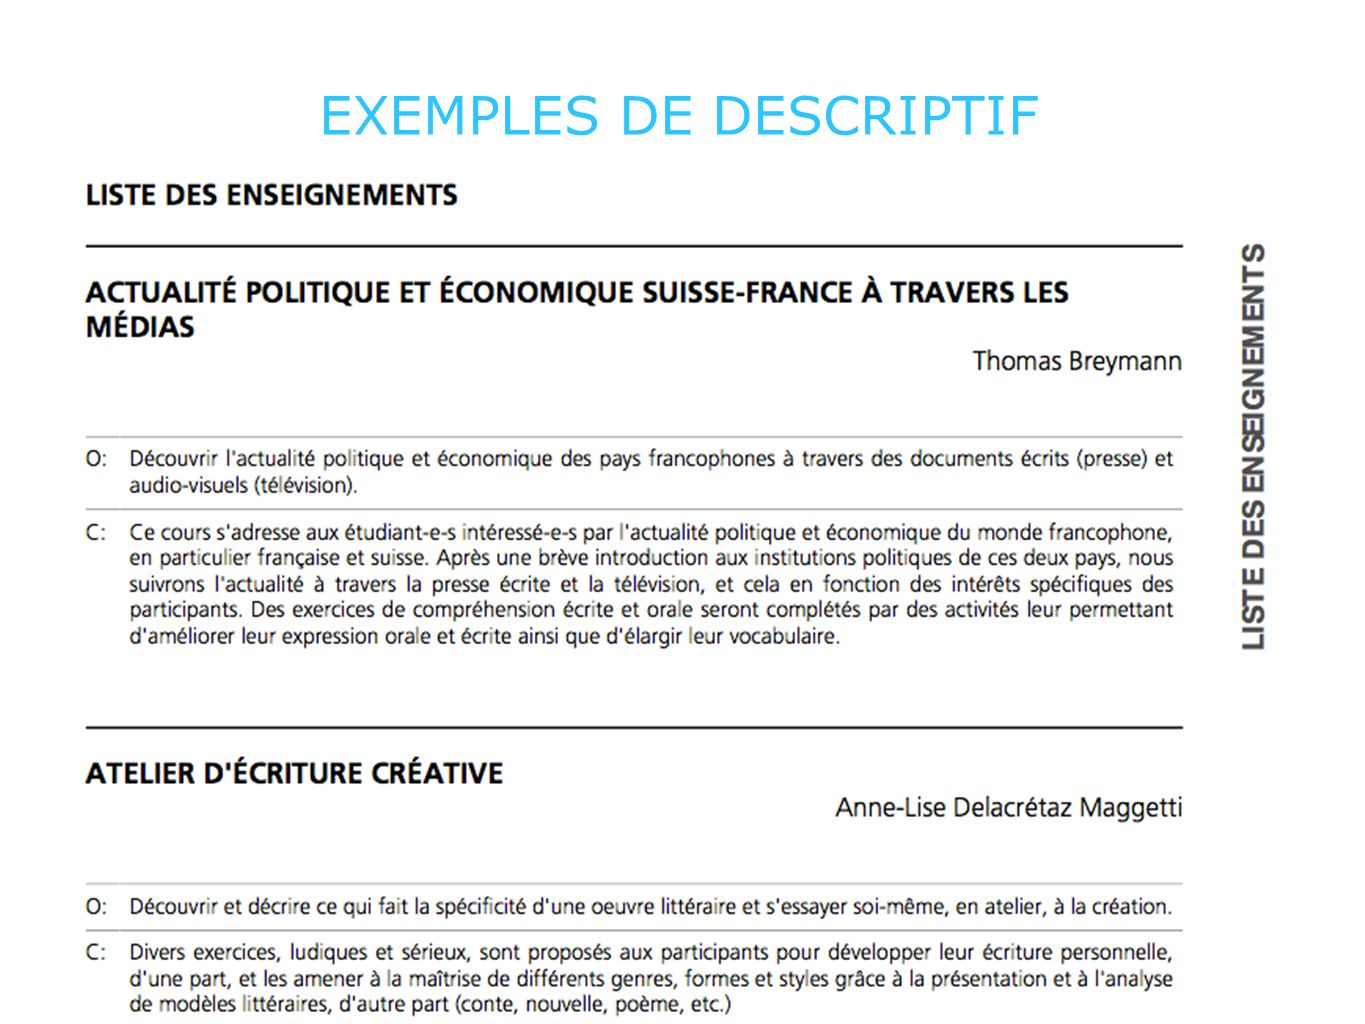 EXEMPLES DE DESCRIPTIF